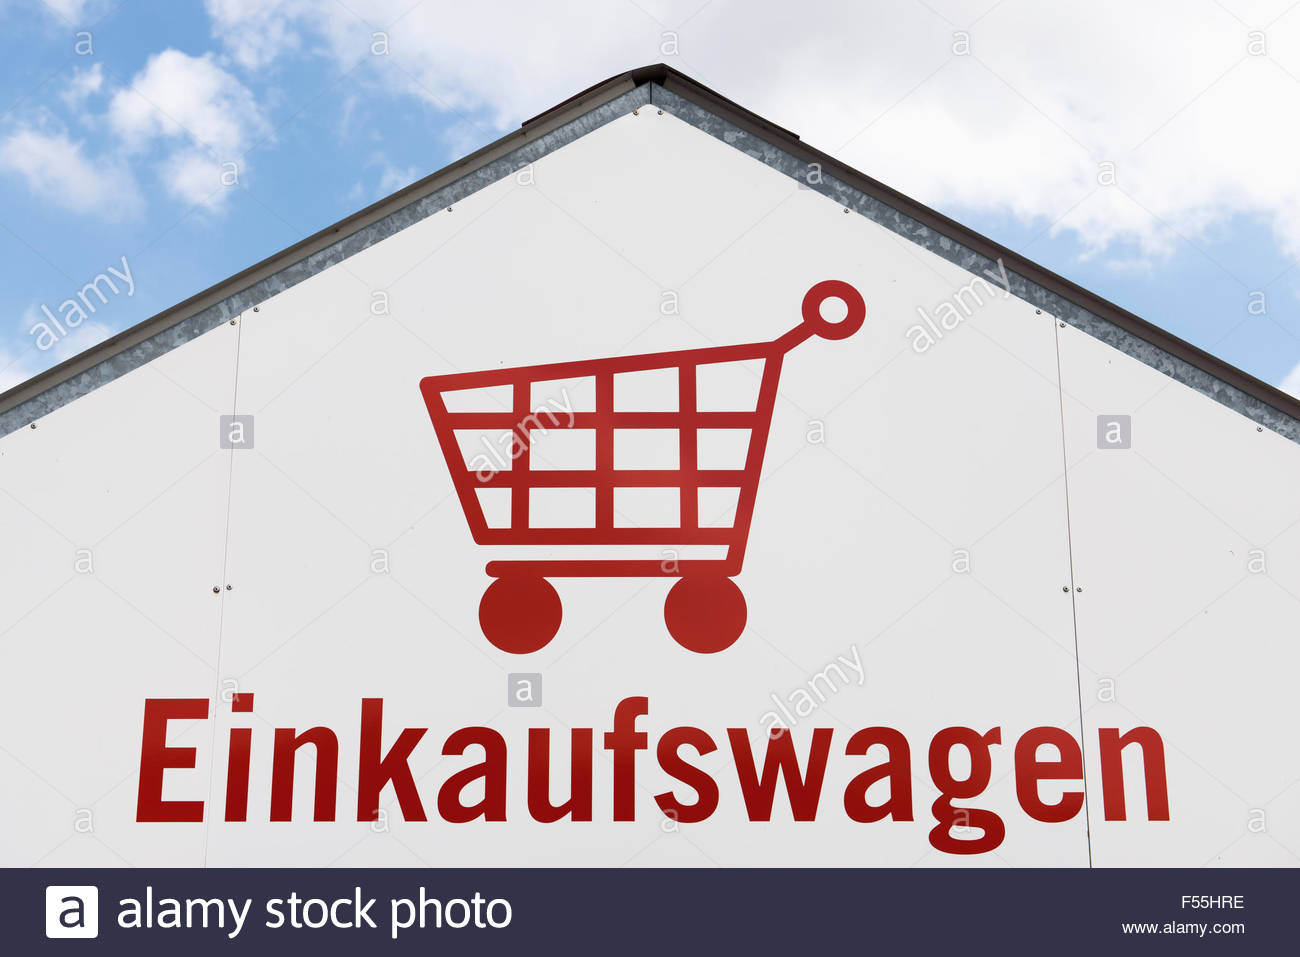 Germany, shopping cart pictogram on a house facade - Stock Image